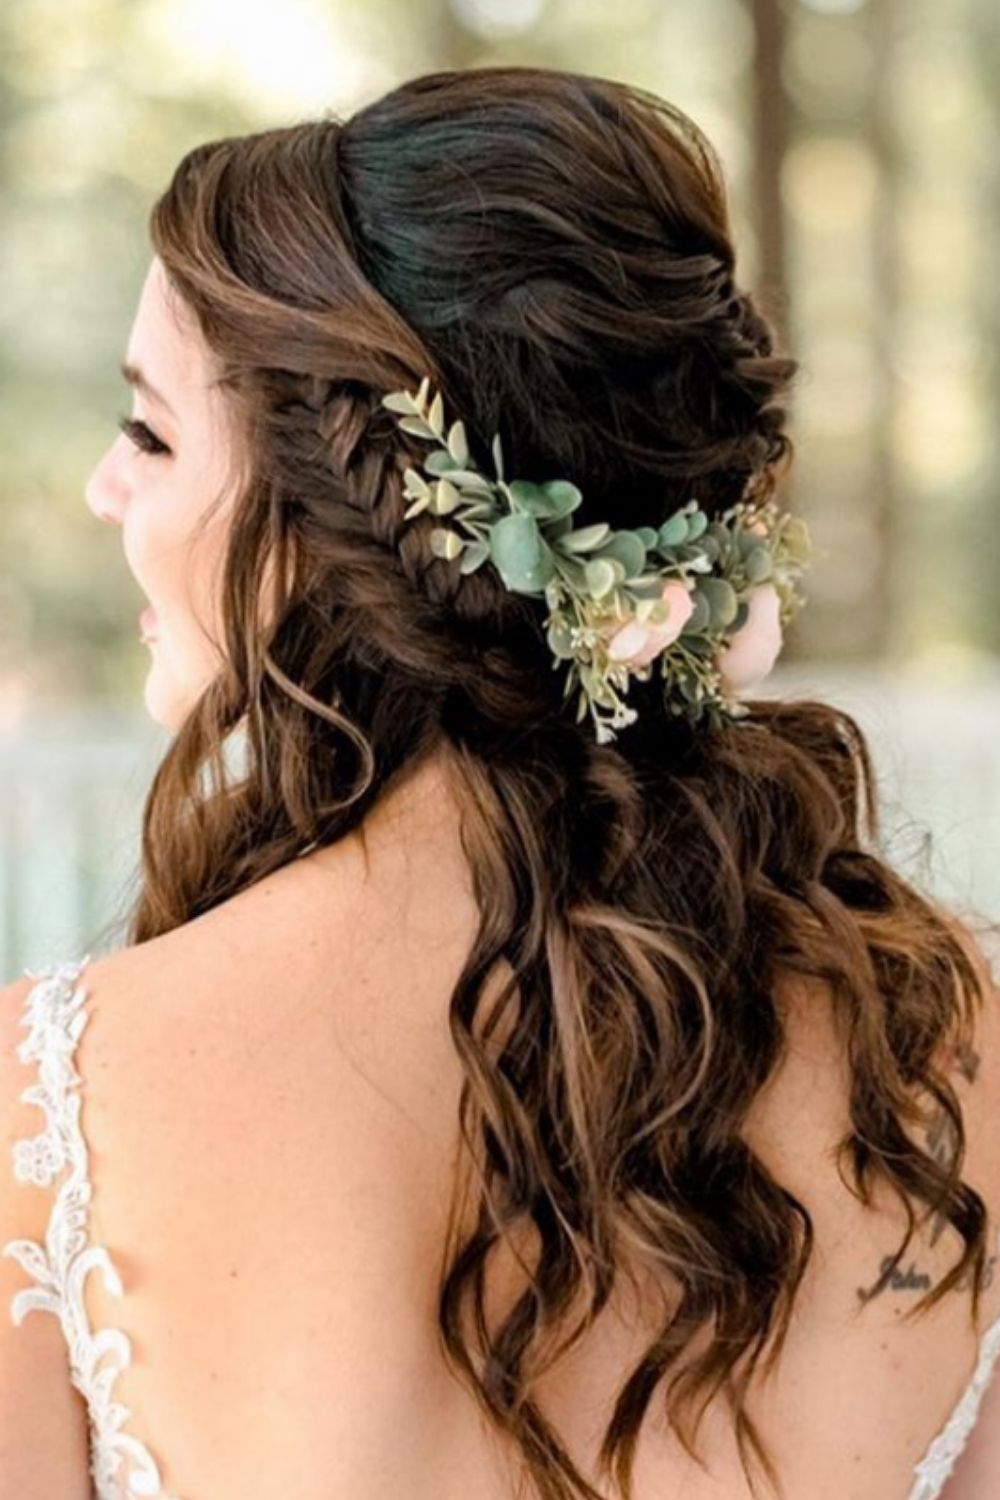 Easy summer hairstyle | Hair Trends That Make Everyone Swoon